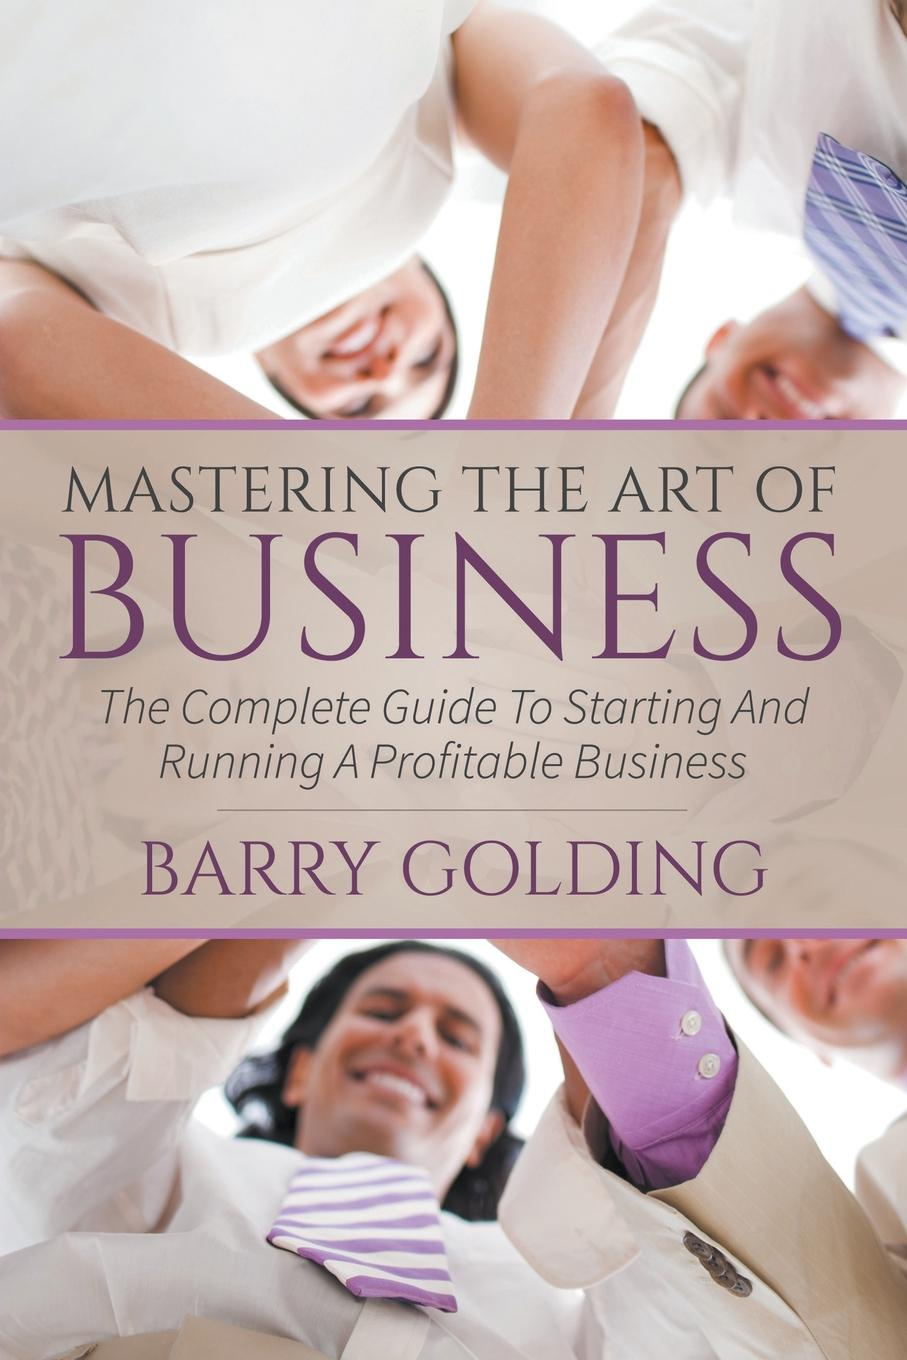 Фото - Barry Golding Mastering The Art Of Business. The Complete Guide To Starting And Running A Profitable Business marie taylor business coaching and mentoring for dummies